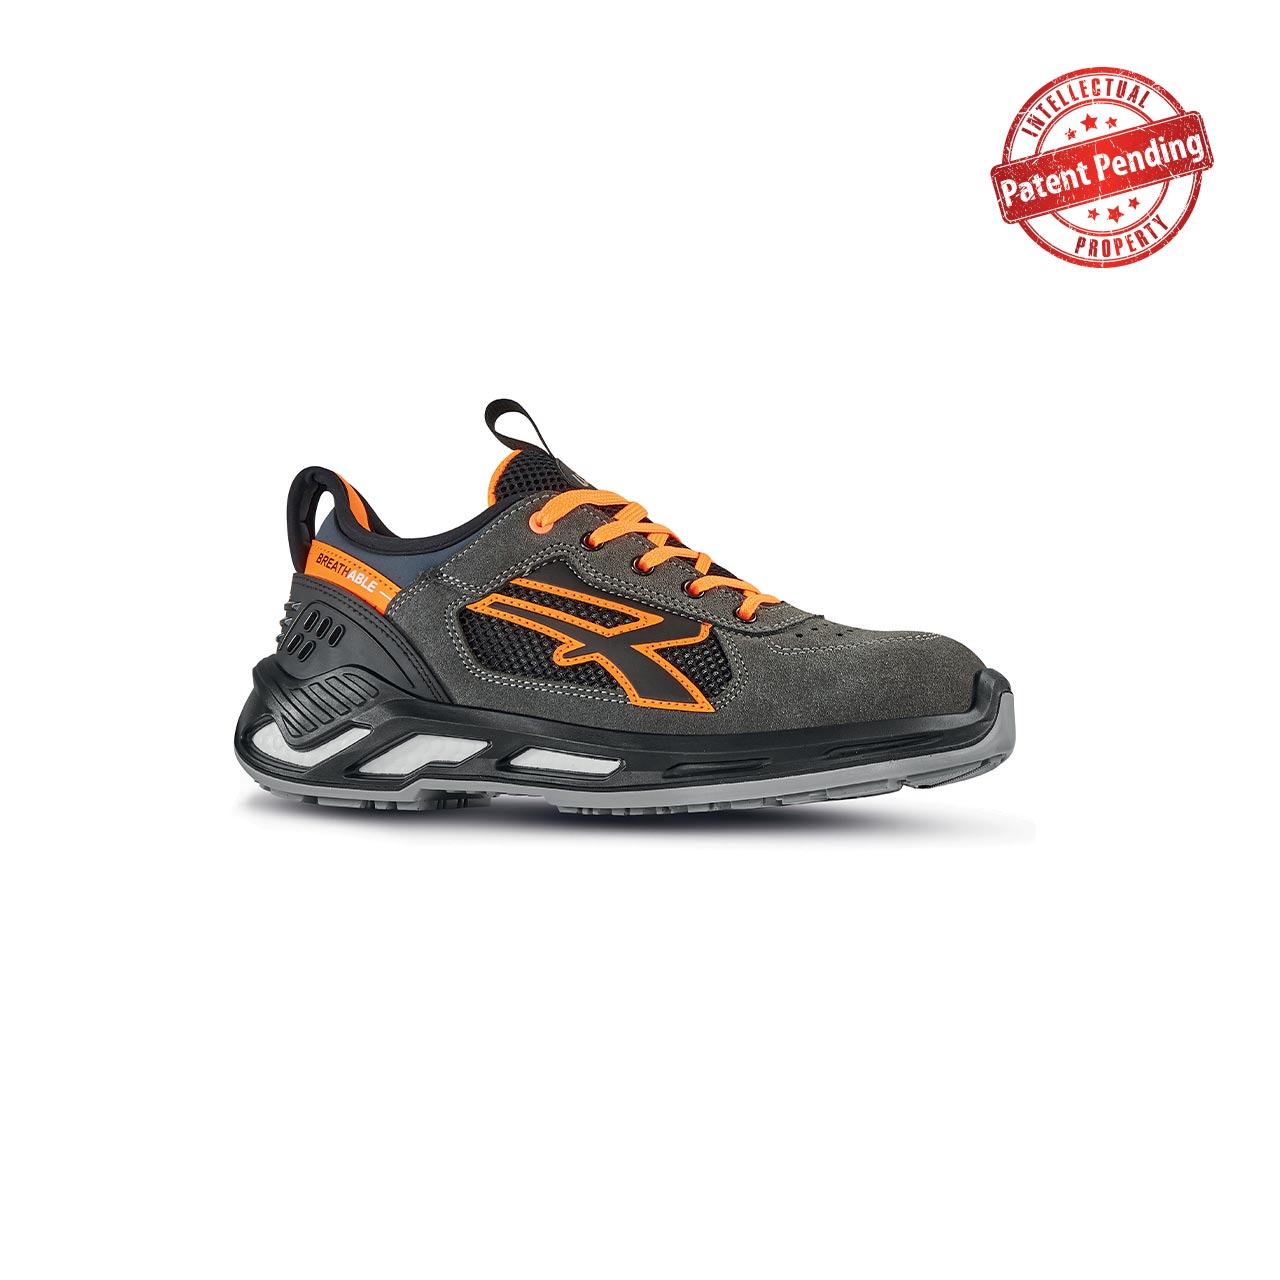 scarpa antinfortunistica upower modello ryder linea red360 vista laterale